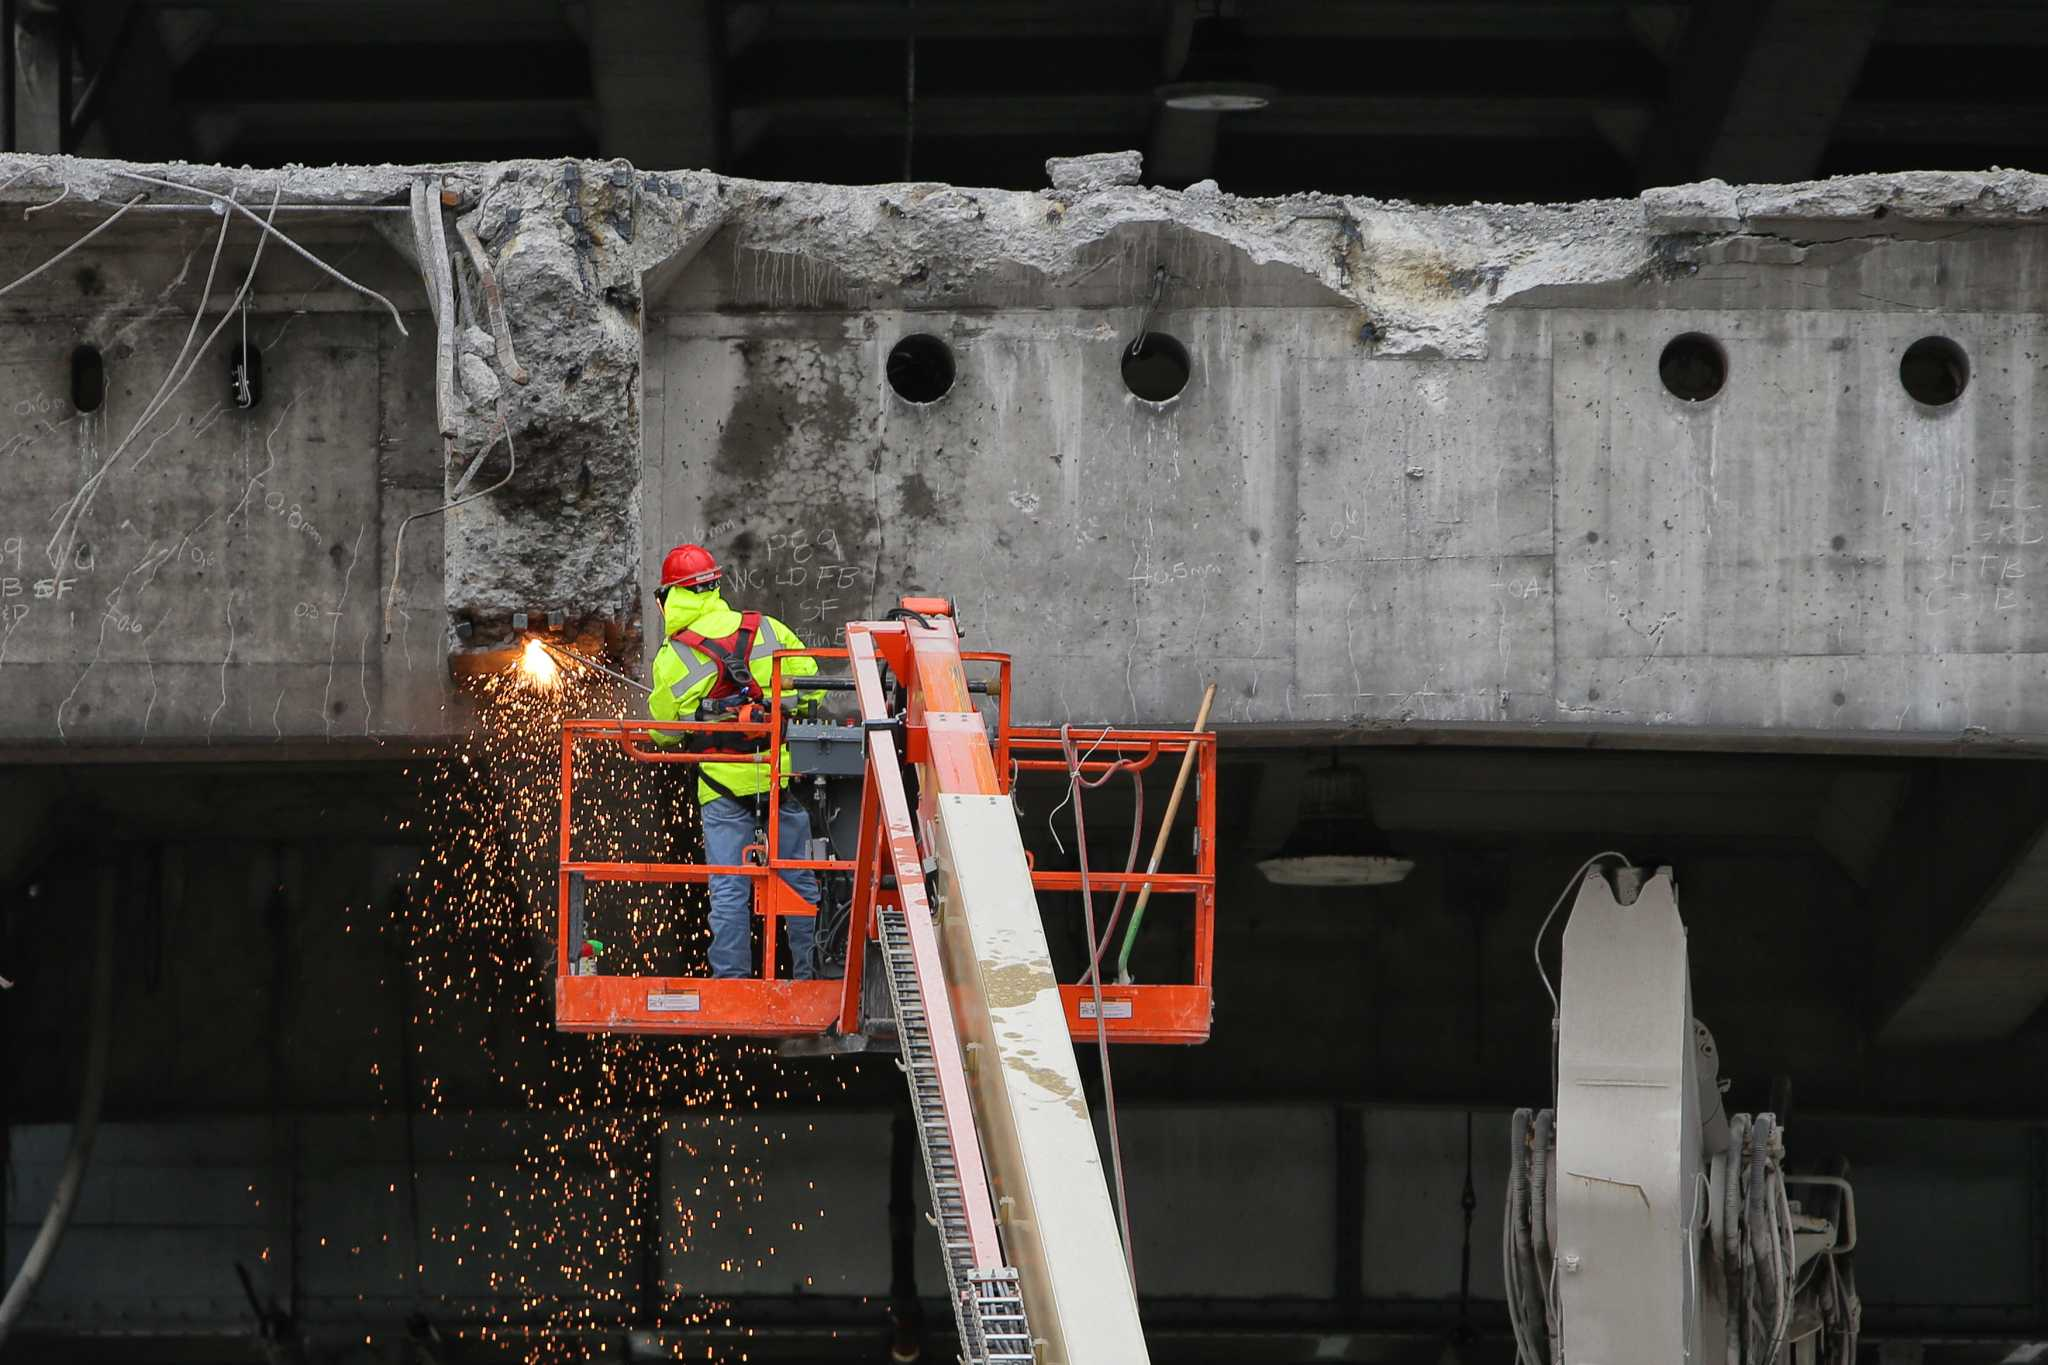 Work continues on Alaskan Way Viaduct demolition, now north of ferry terminal